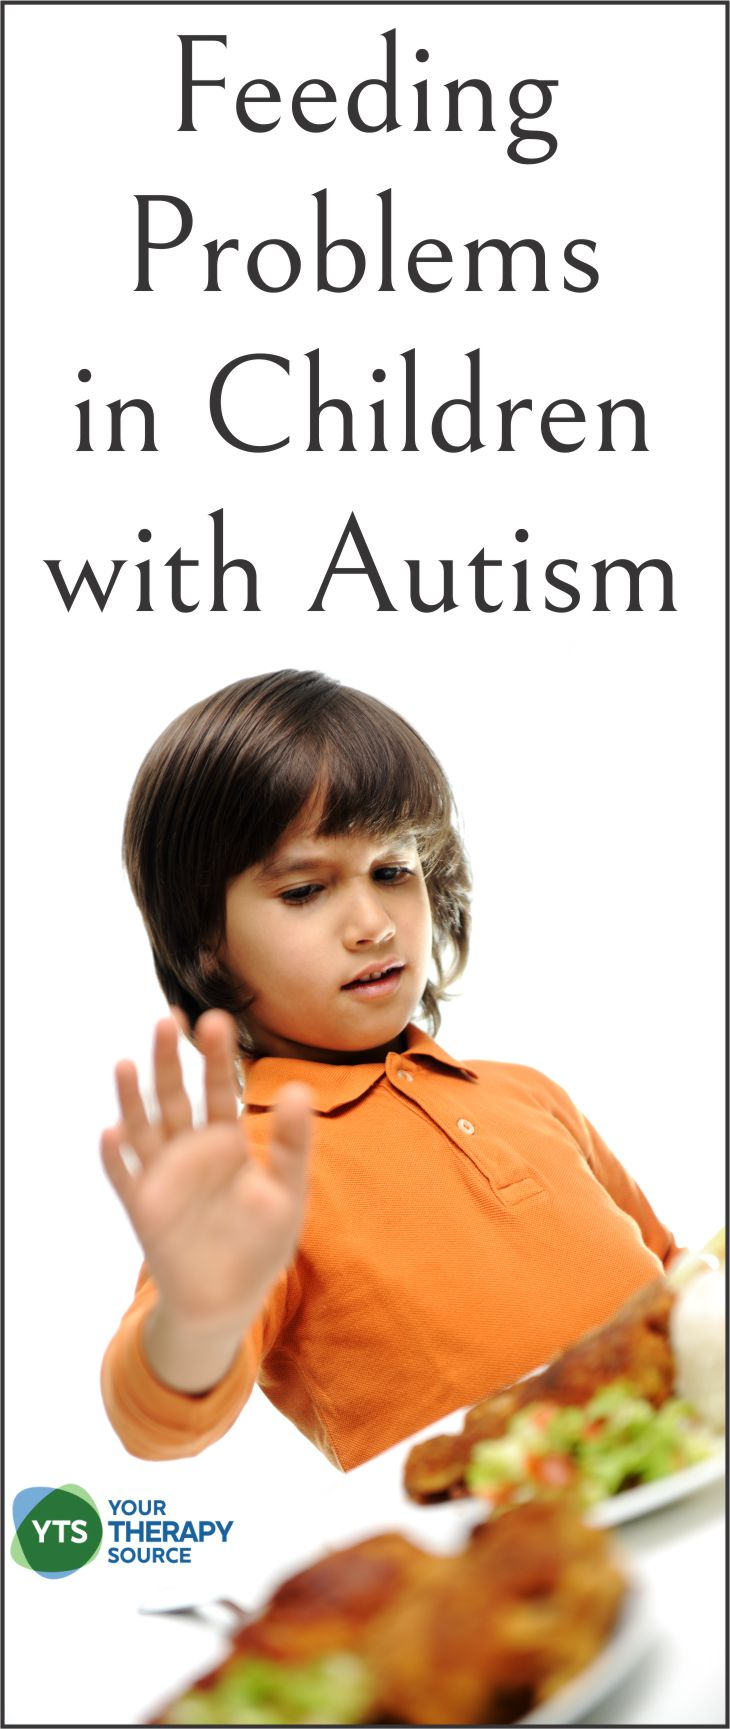 Researchers have determined that there is a higher prevalence of feeding problems in children with autism over three years of age.  The research has consistently found that more than 50% of children with ASD exhibit limited food acceptance.  This can increase stress levels for families, in addition, to put children at risk for decreased intake of important minerals and vitamins.